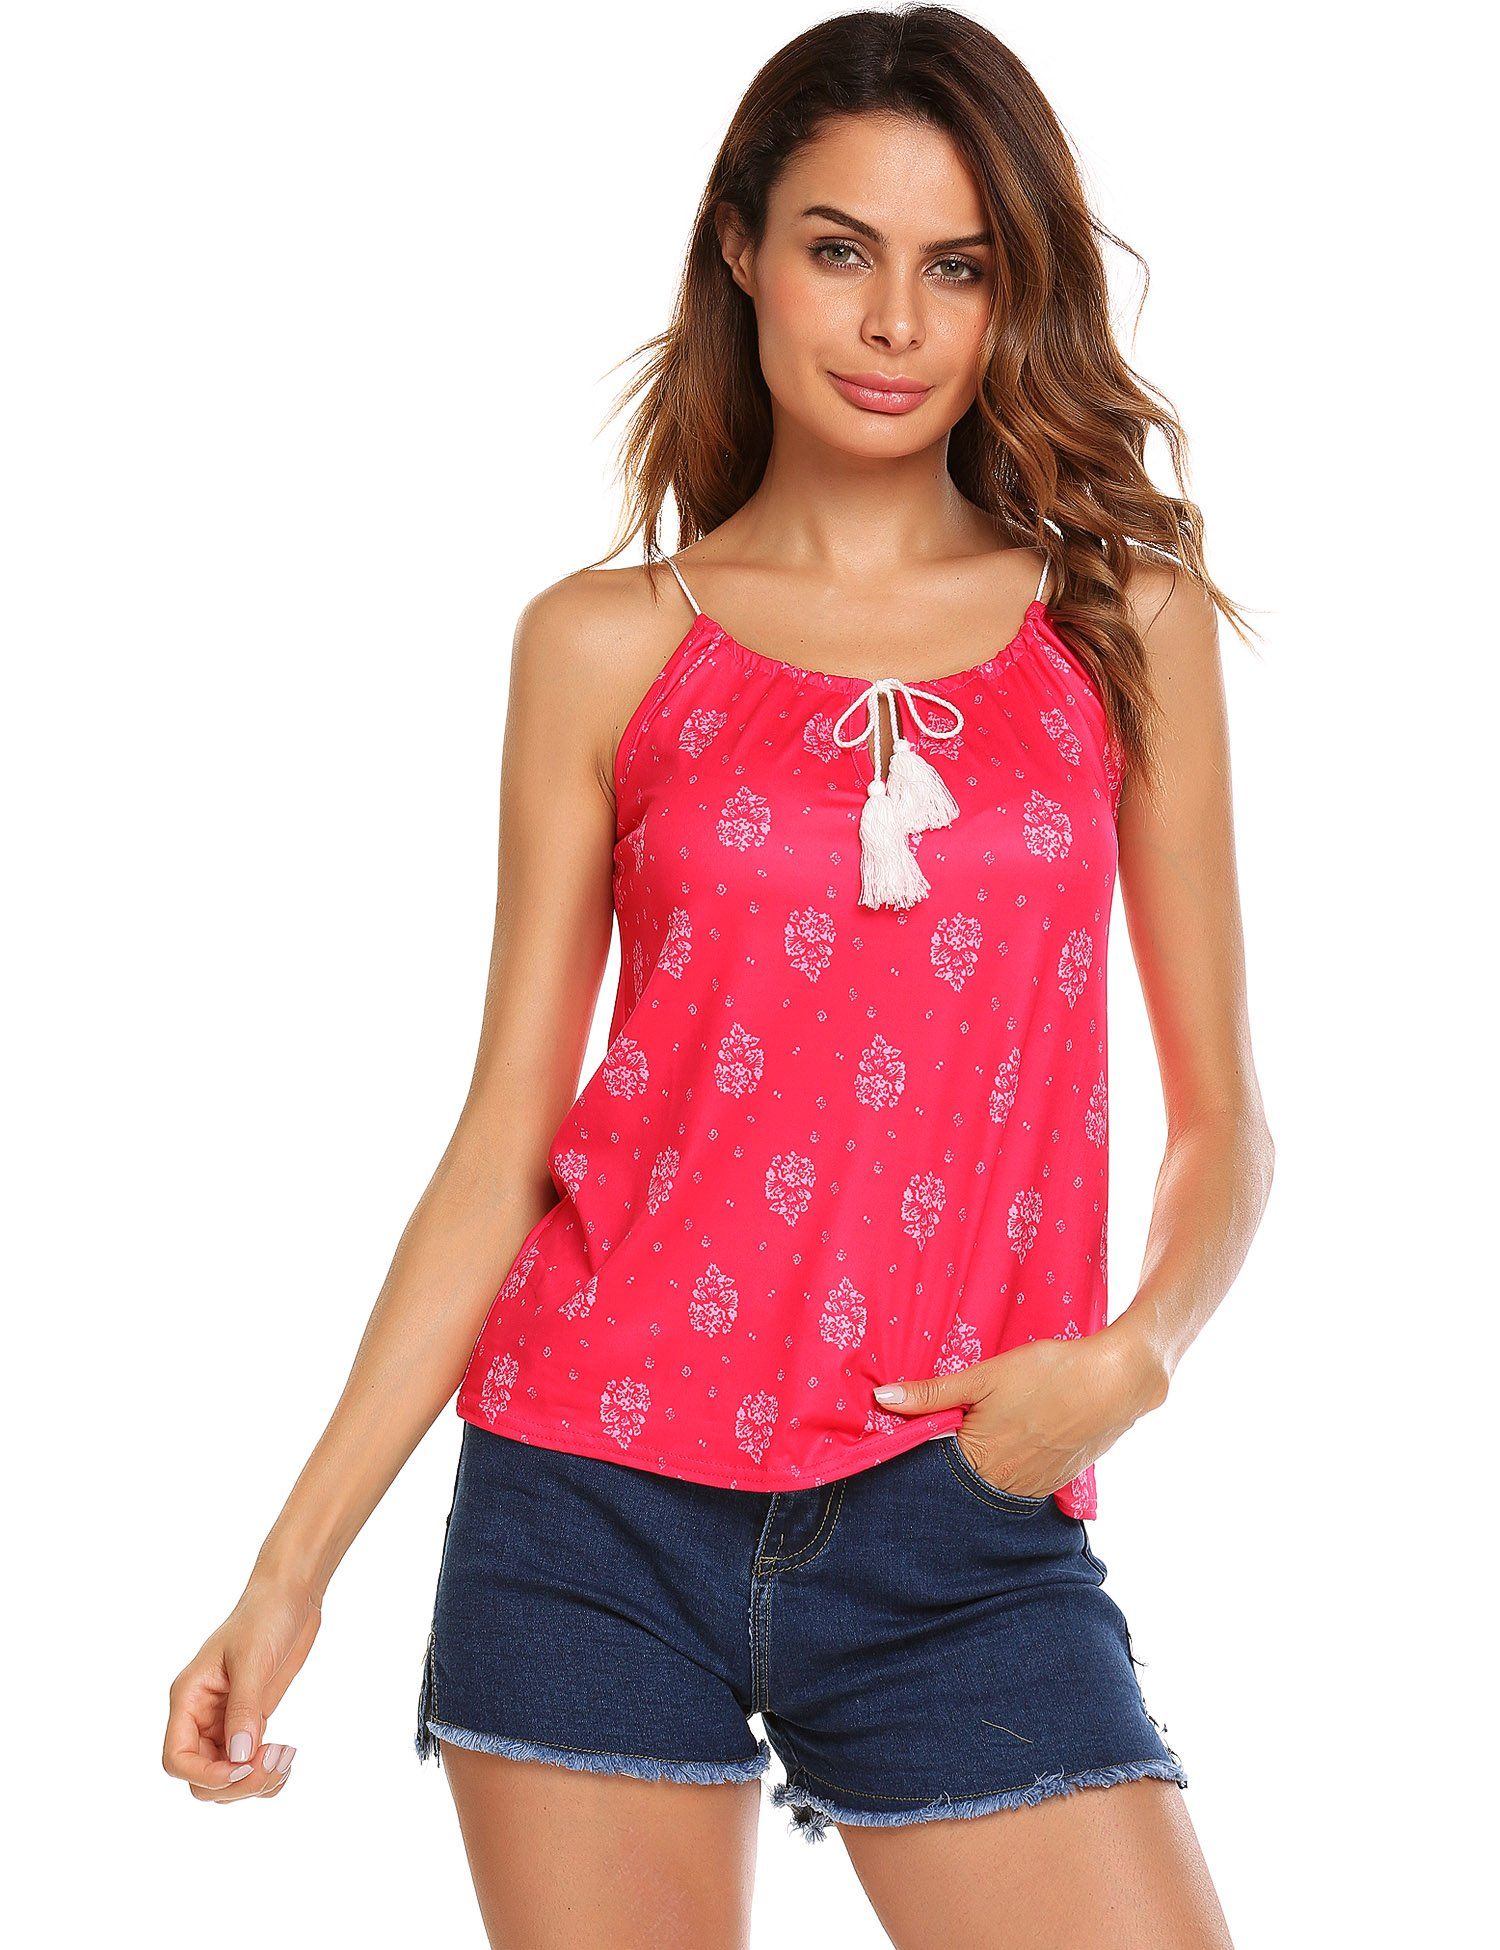 EASTHER Sleeveless Tops Wear Camisole Vest Spaghetti Strap Tank(PAT5,XX-Large)